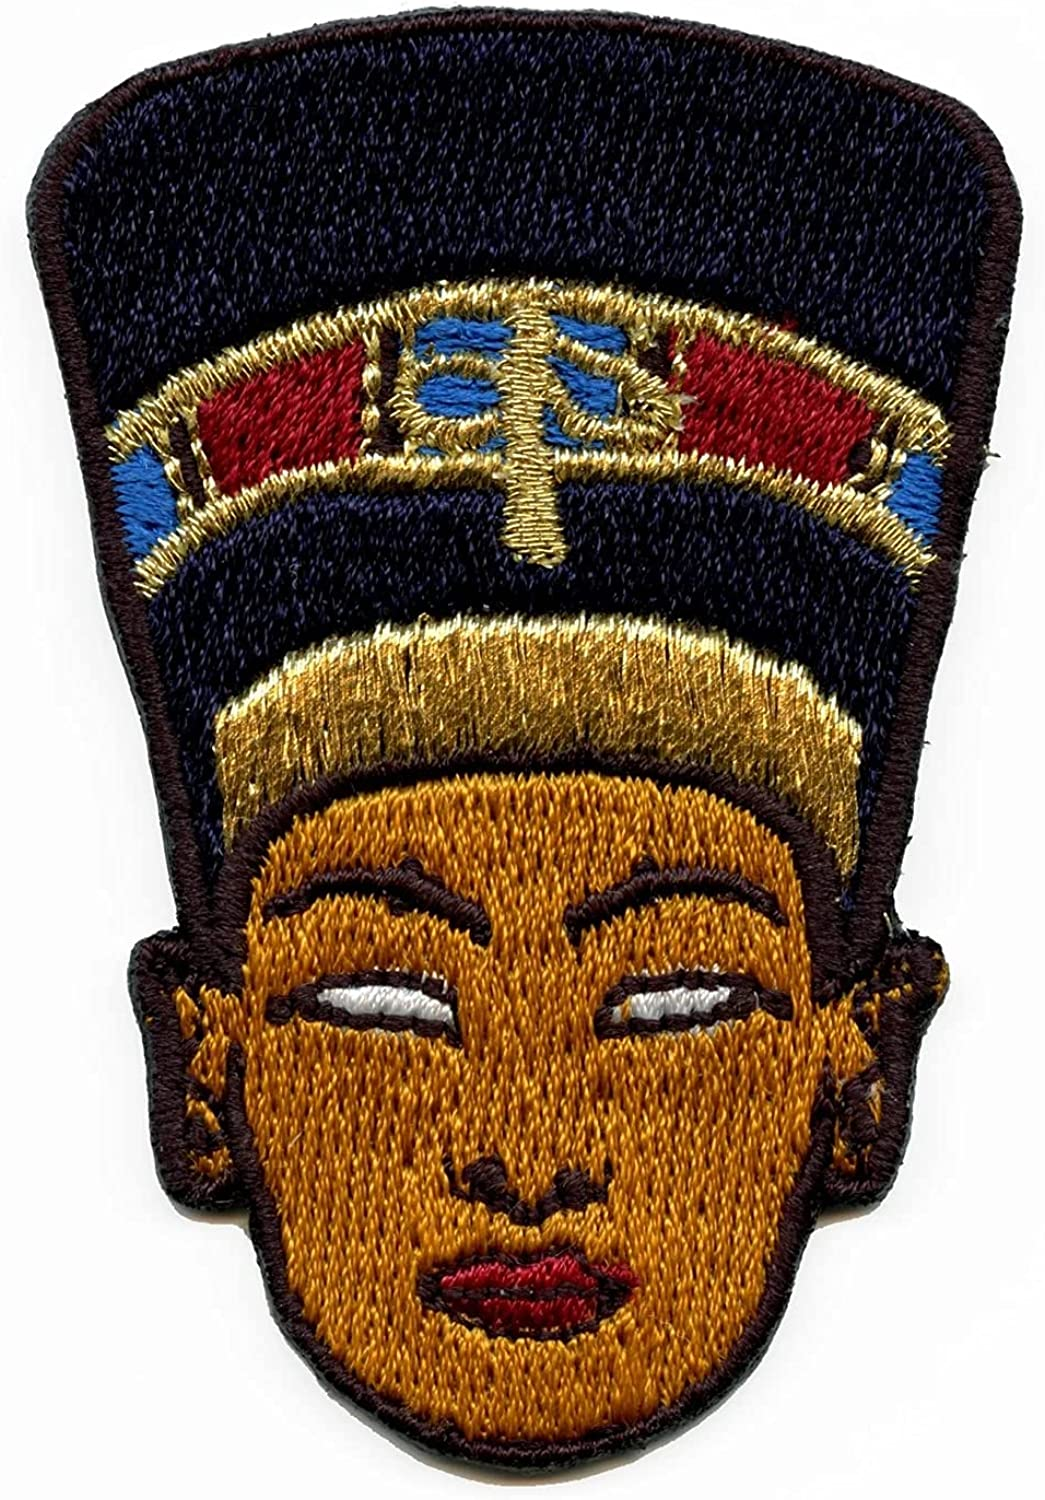 Queen Nefertiti Patch  Fashion  Gift for Her  Gift for Him  Accessories  Iron On Patch